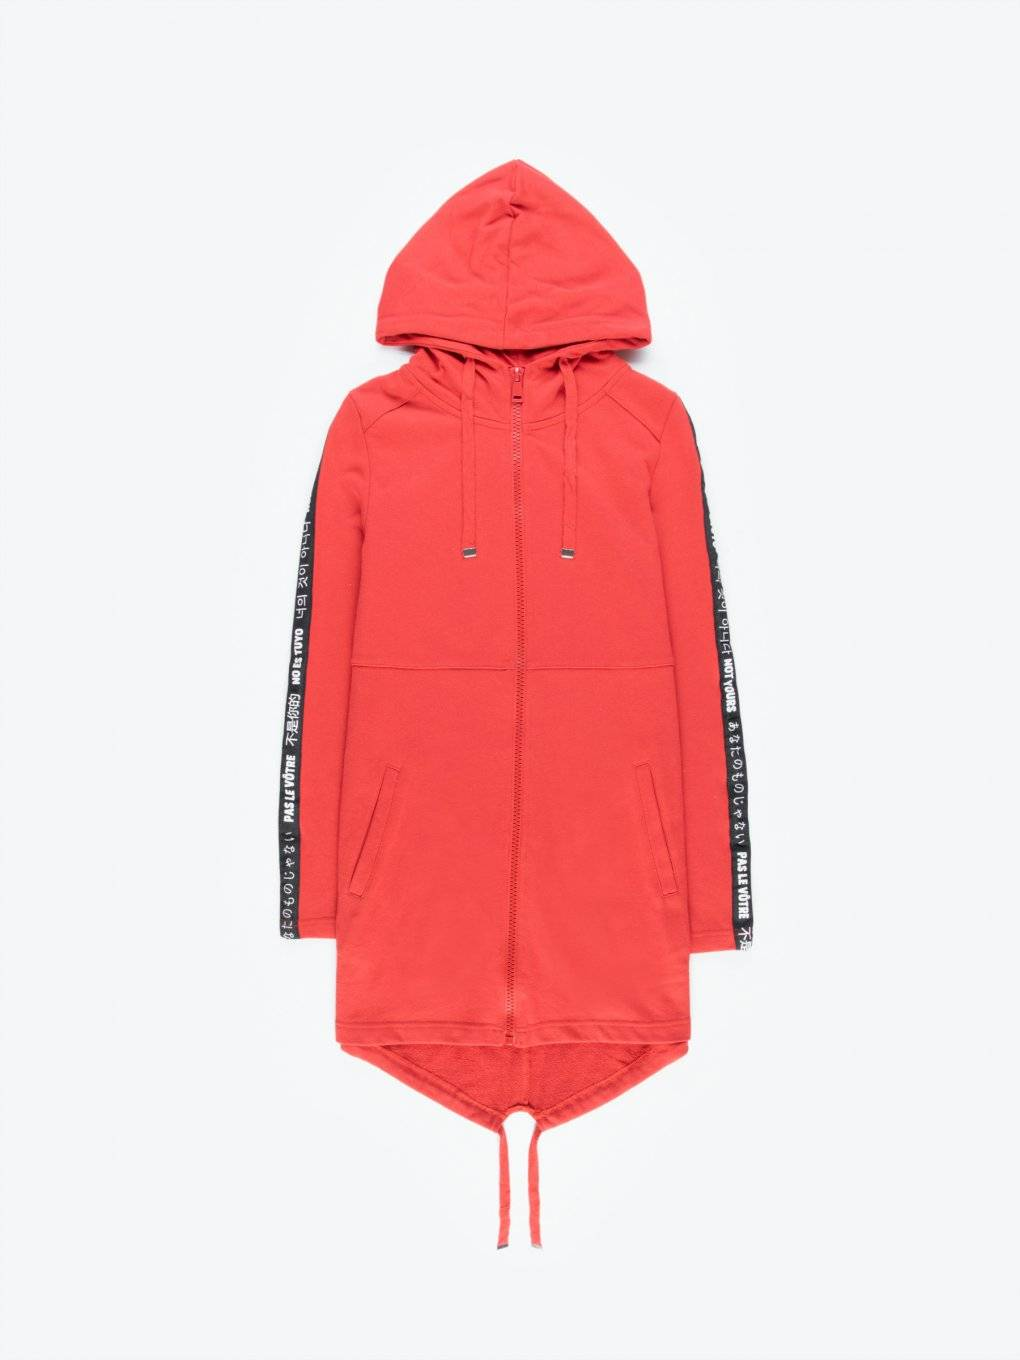 Longline zip-up hoodie with decorative tape